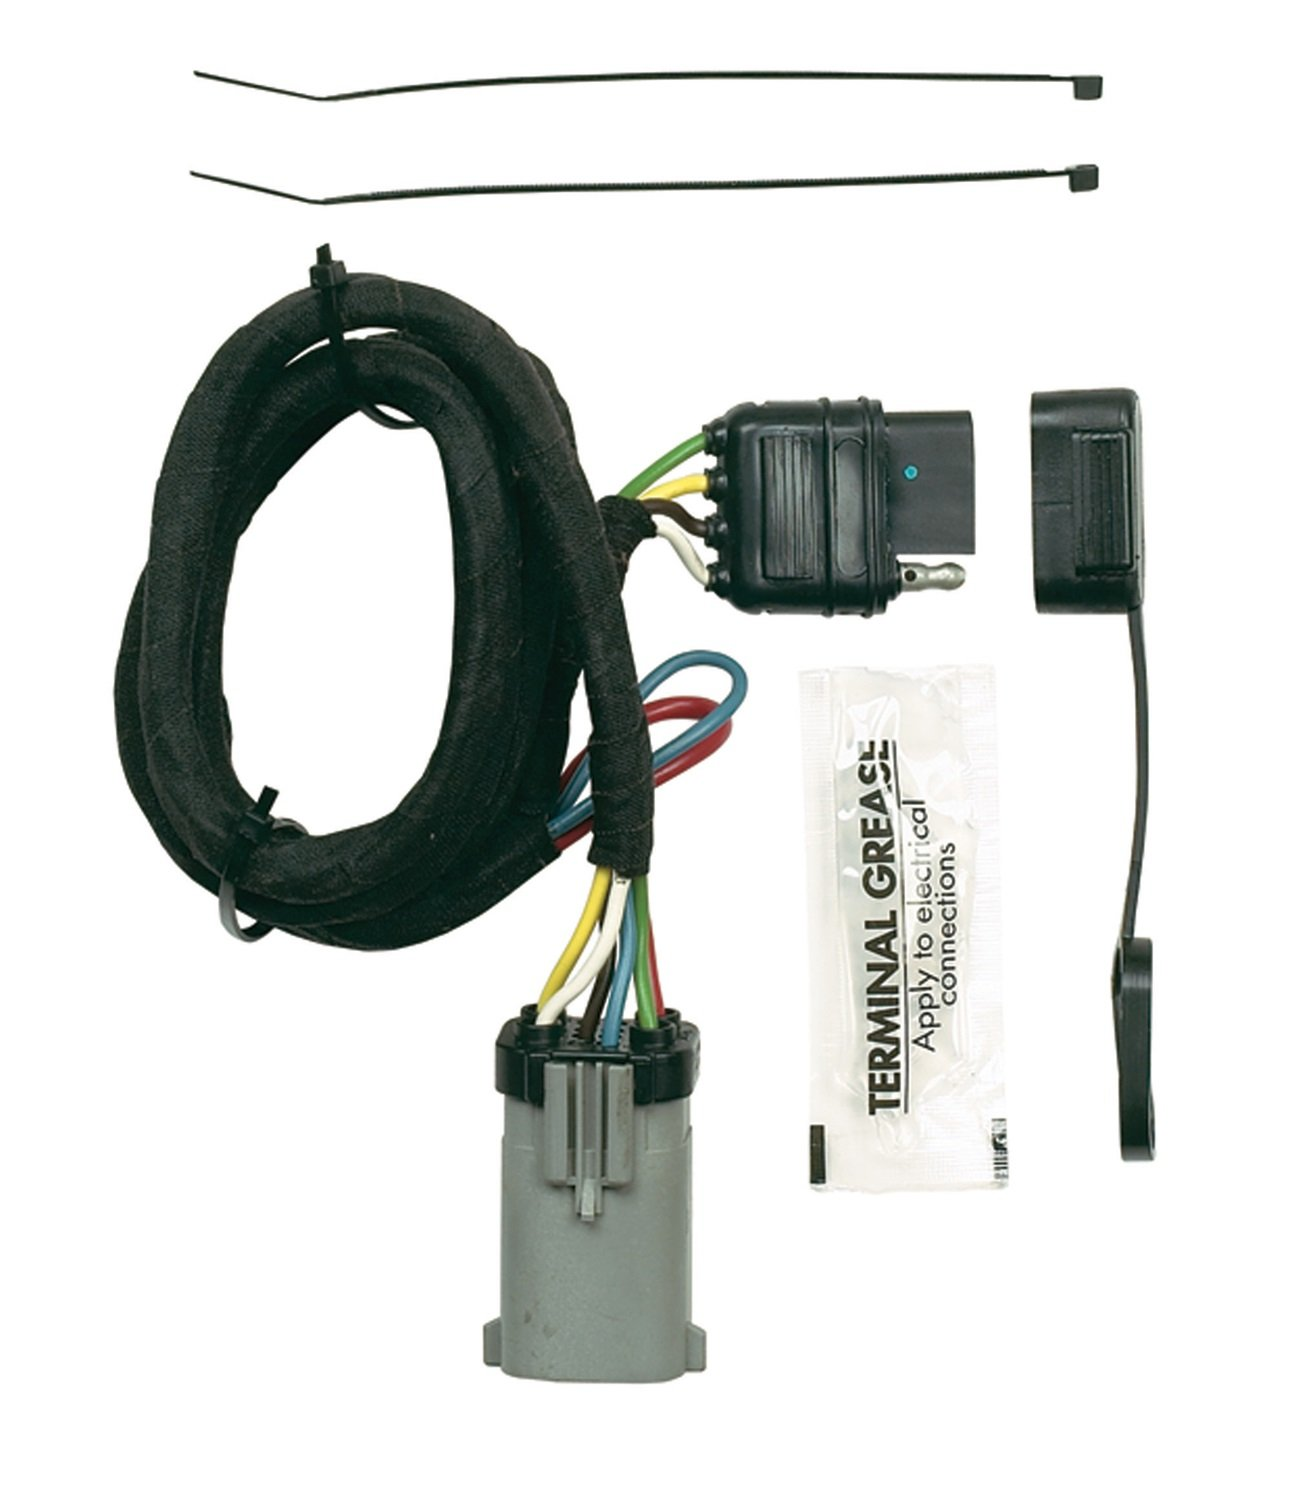 613qndjxv2L._SL1500_ amazon com hopkins 40165 plug in simple vehicle wiring kit hoppy wiring harness at crackthecode.co